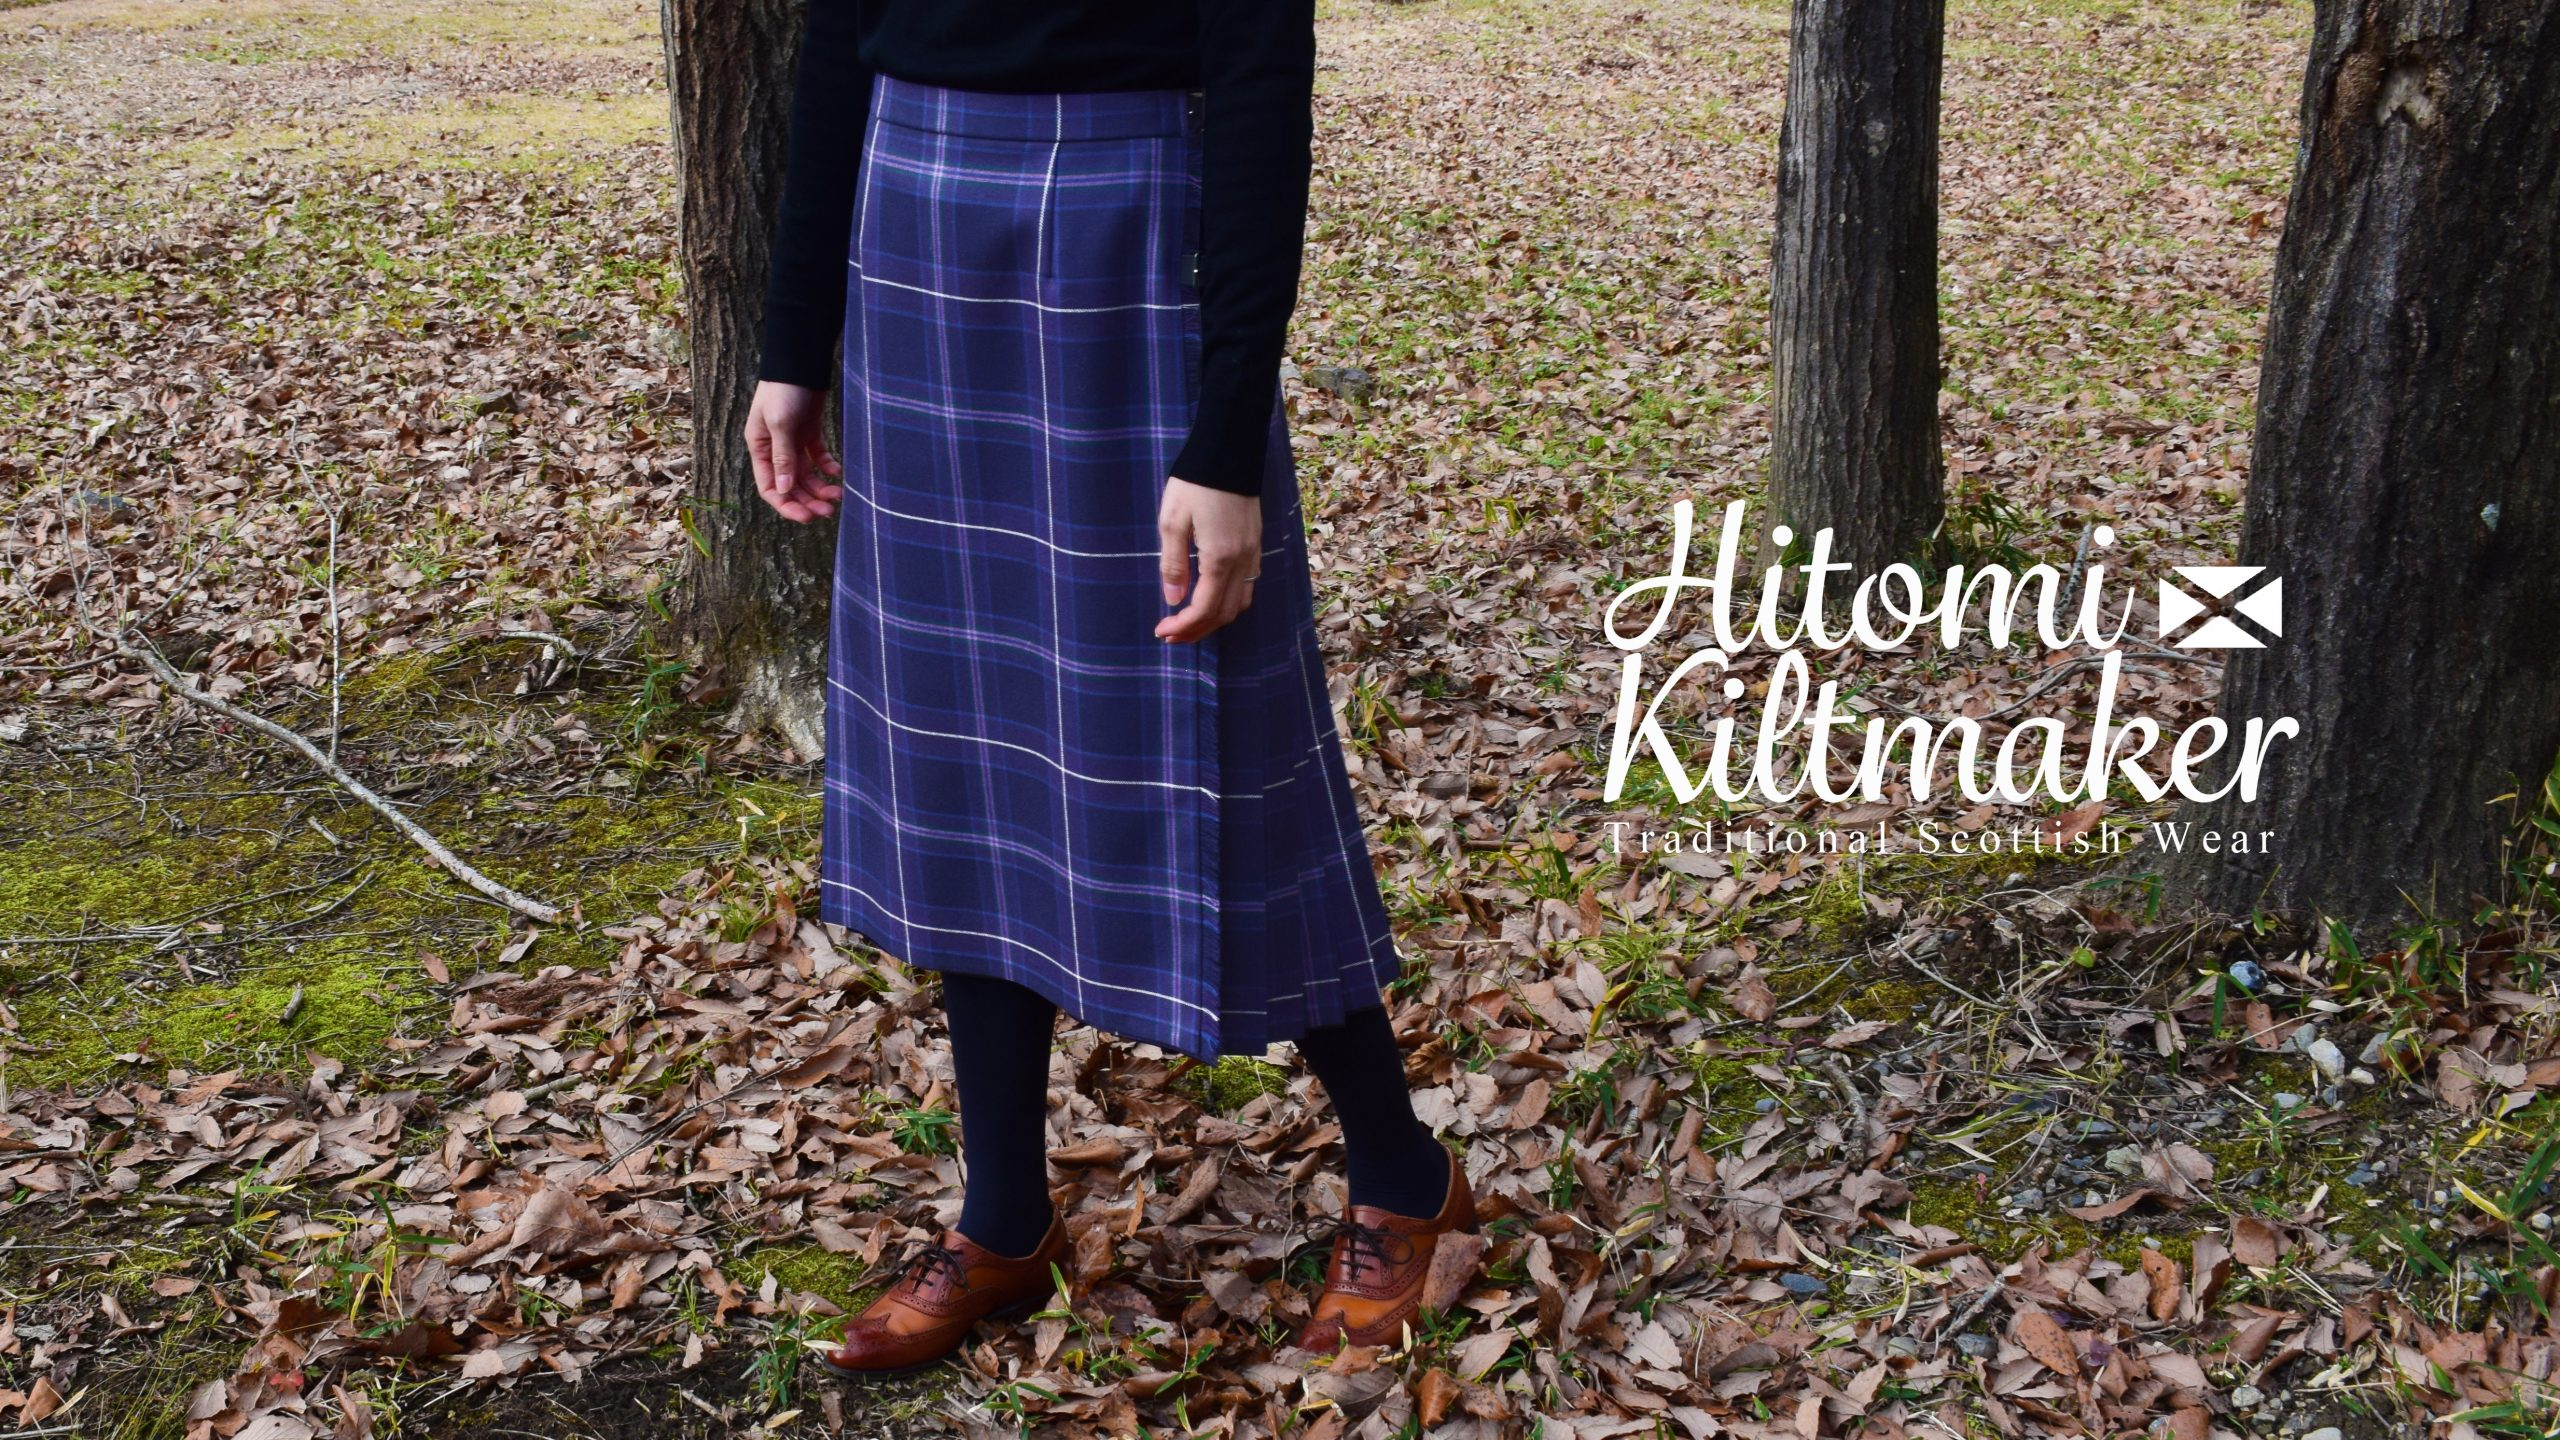 Japanesekiltmaker,kilts,Japan,Scottland